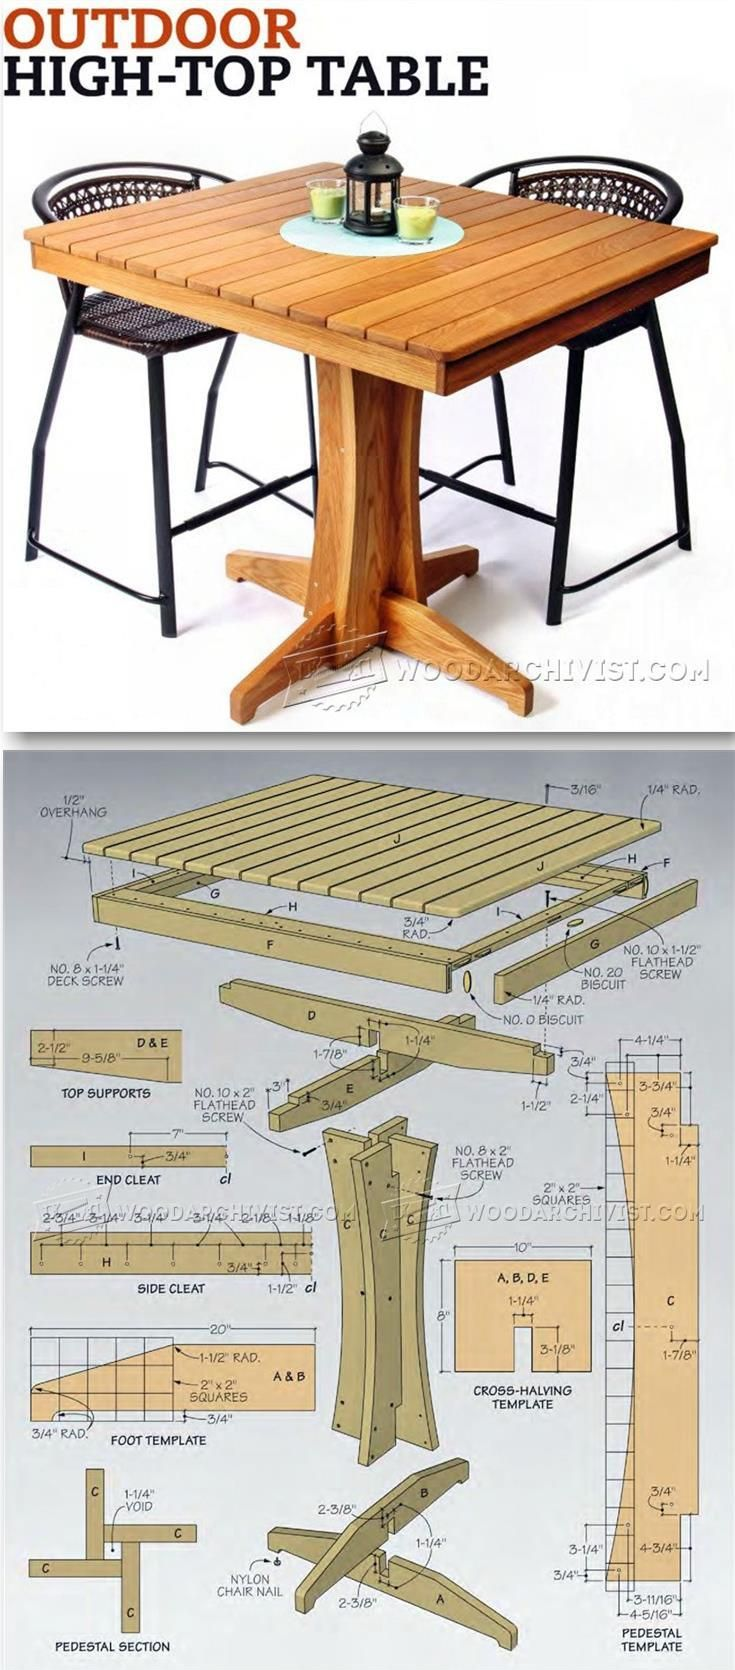 Outdoor High Top Table Plans - Outdoor Furniture Plans & Projects   WoodArchivist.com